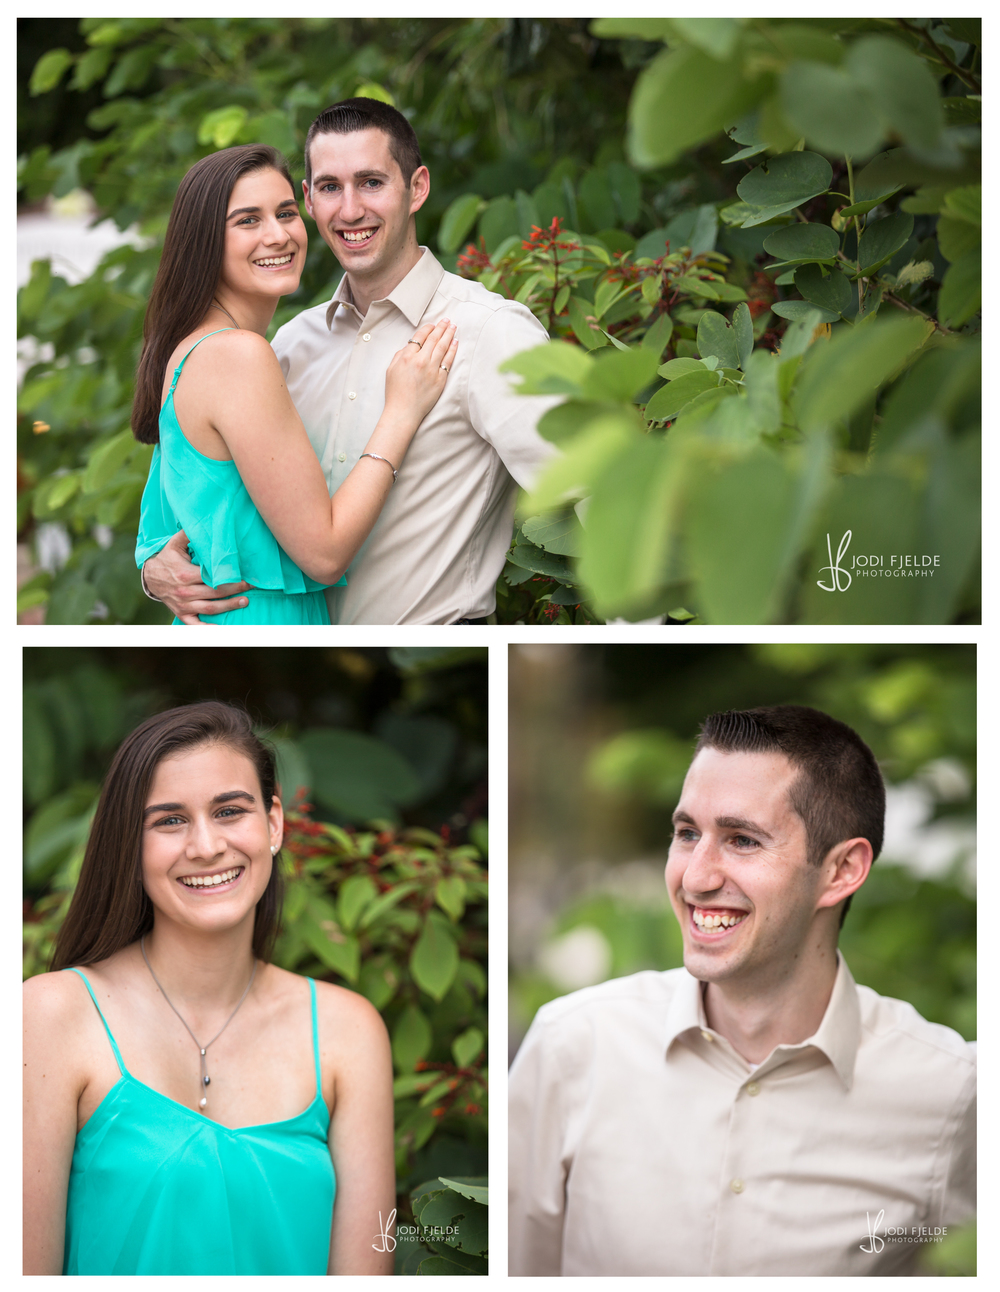 Delray_BEach_Sundy_HouseFlorida_engagement_E-session_Allison_&_Matt_photography_jodi_Fjelde_photography_4.jpg